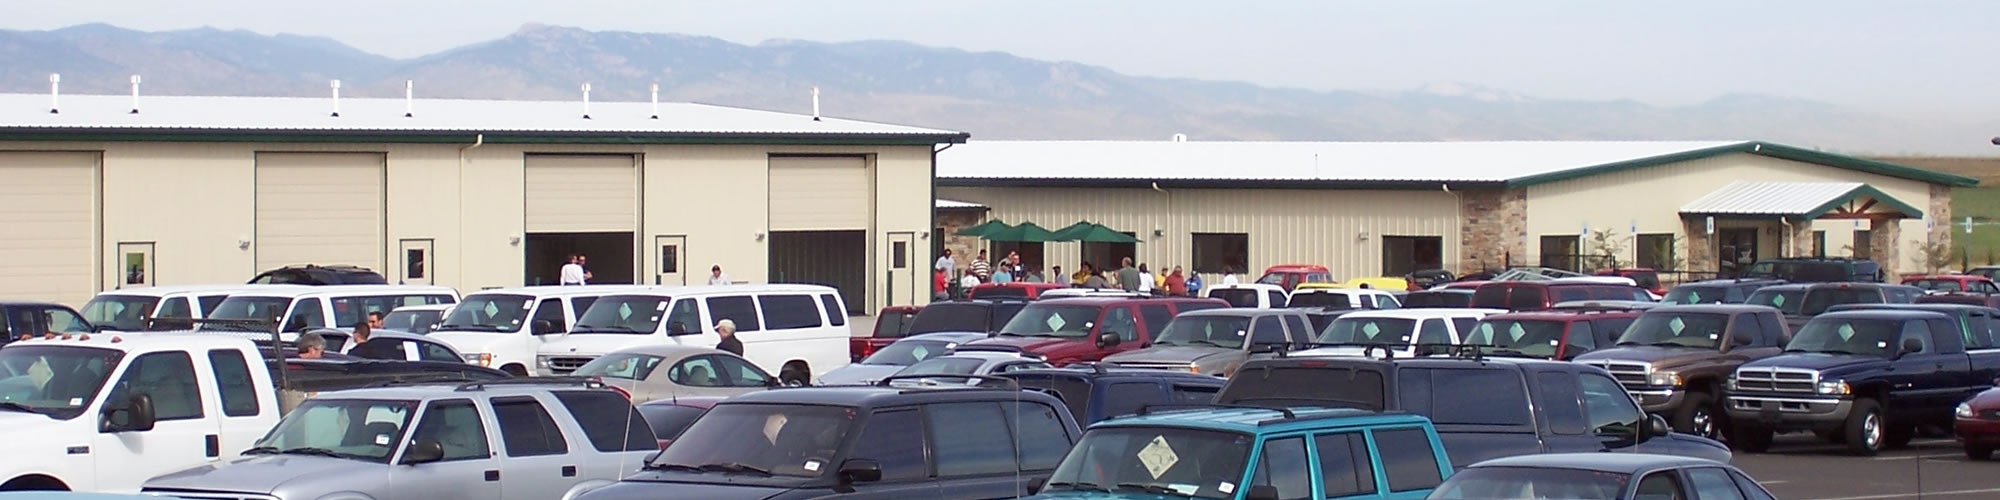 About Loveland Auto Auction in Colorado